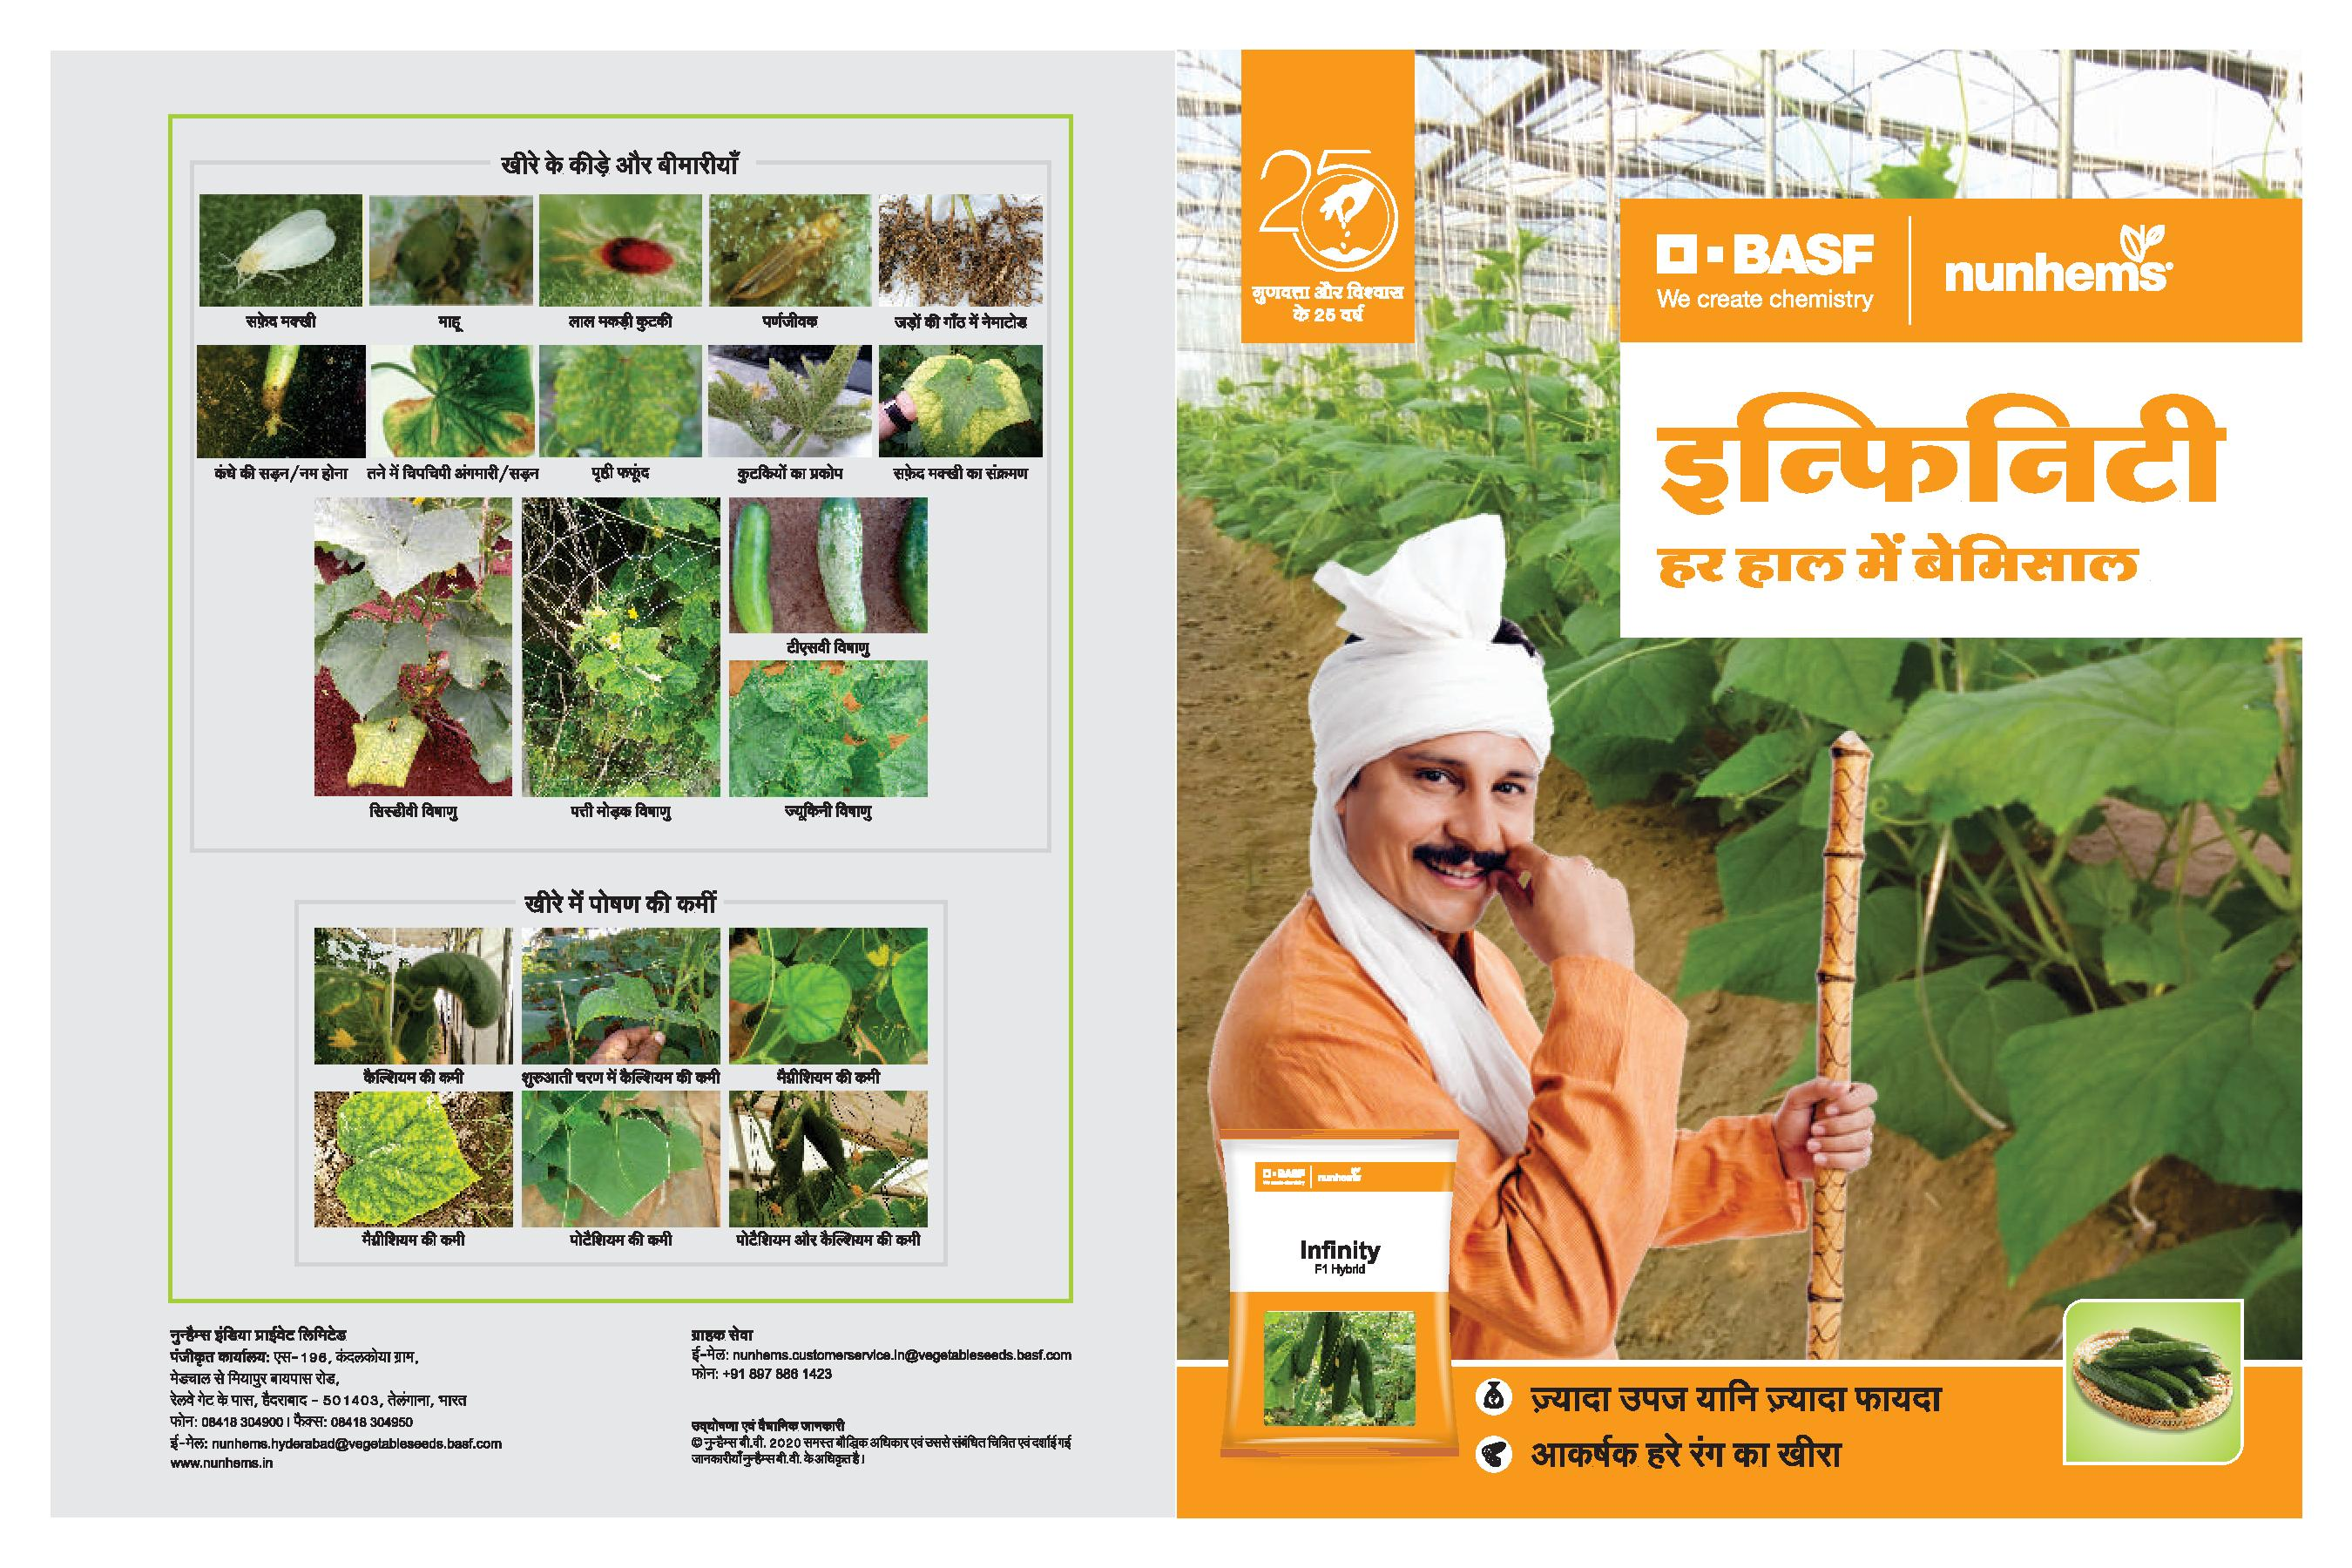 uploads/product/Infinity_Cucumber_leaflet_-_Hindi-1-page-001.jpg